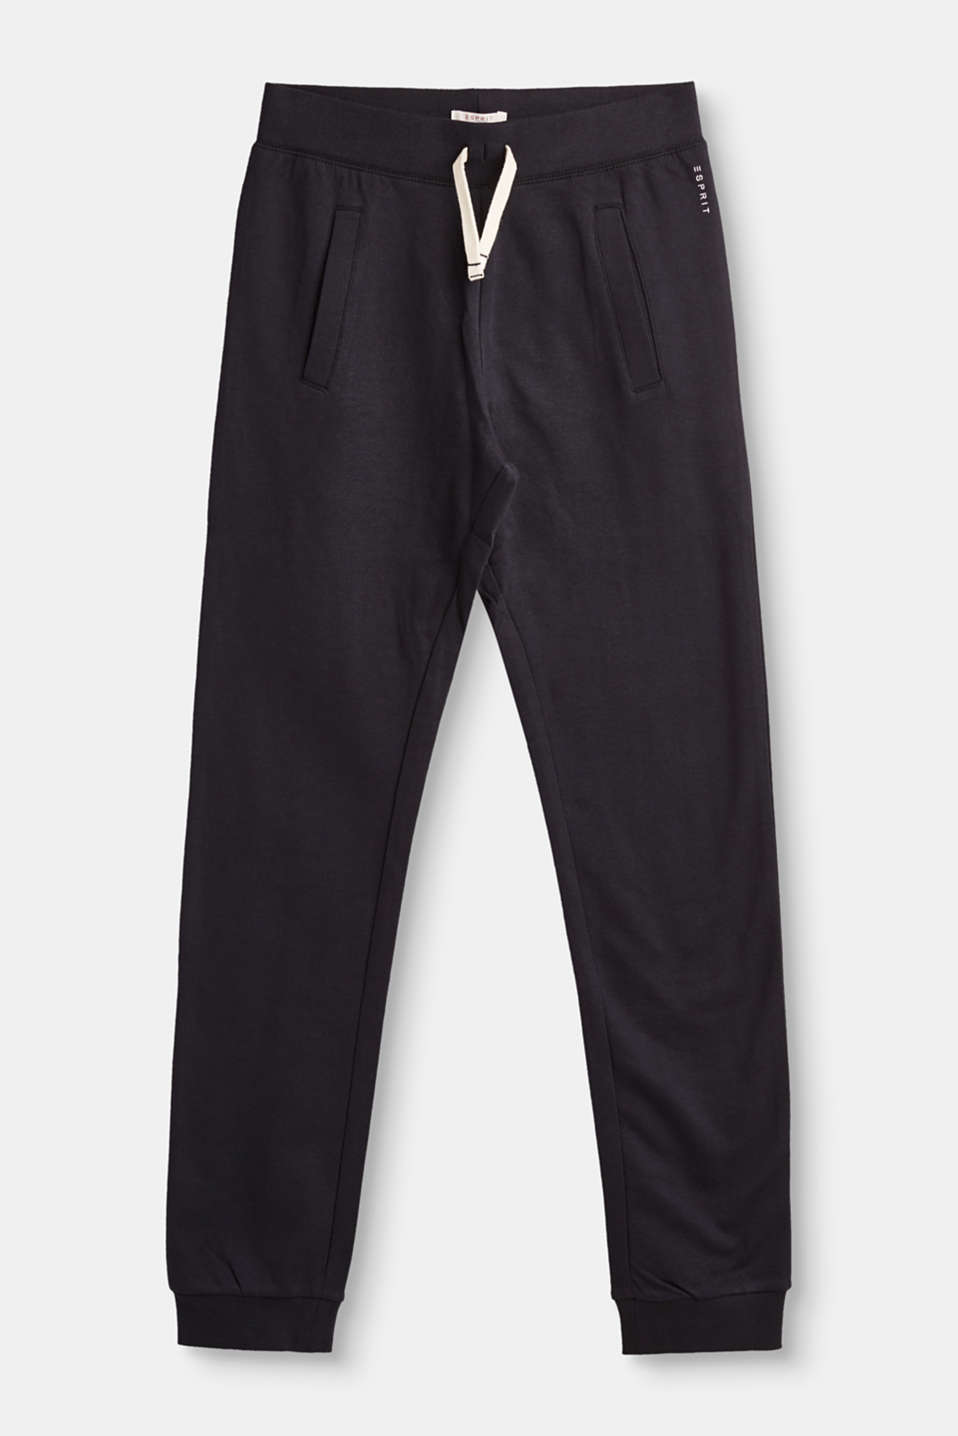 Esprit - Basic tracksuit bottoms in 100% cotton